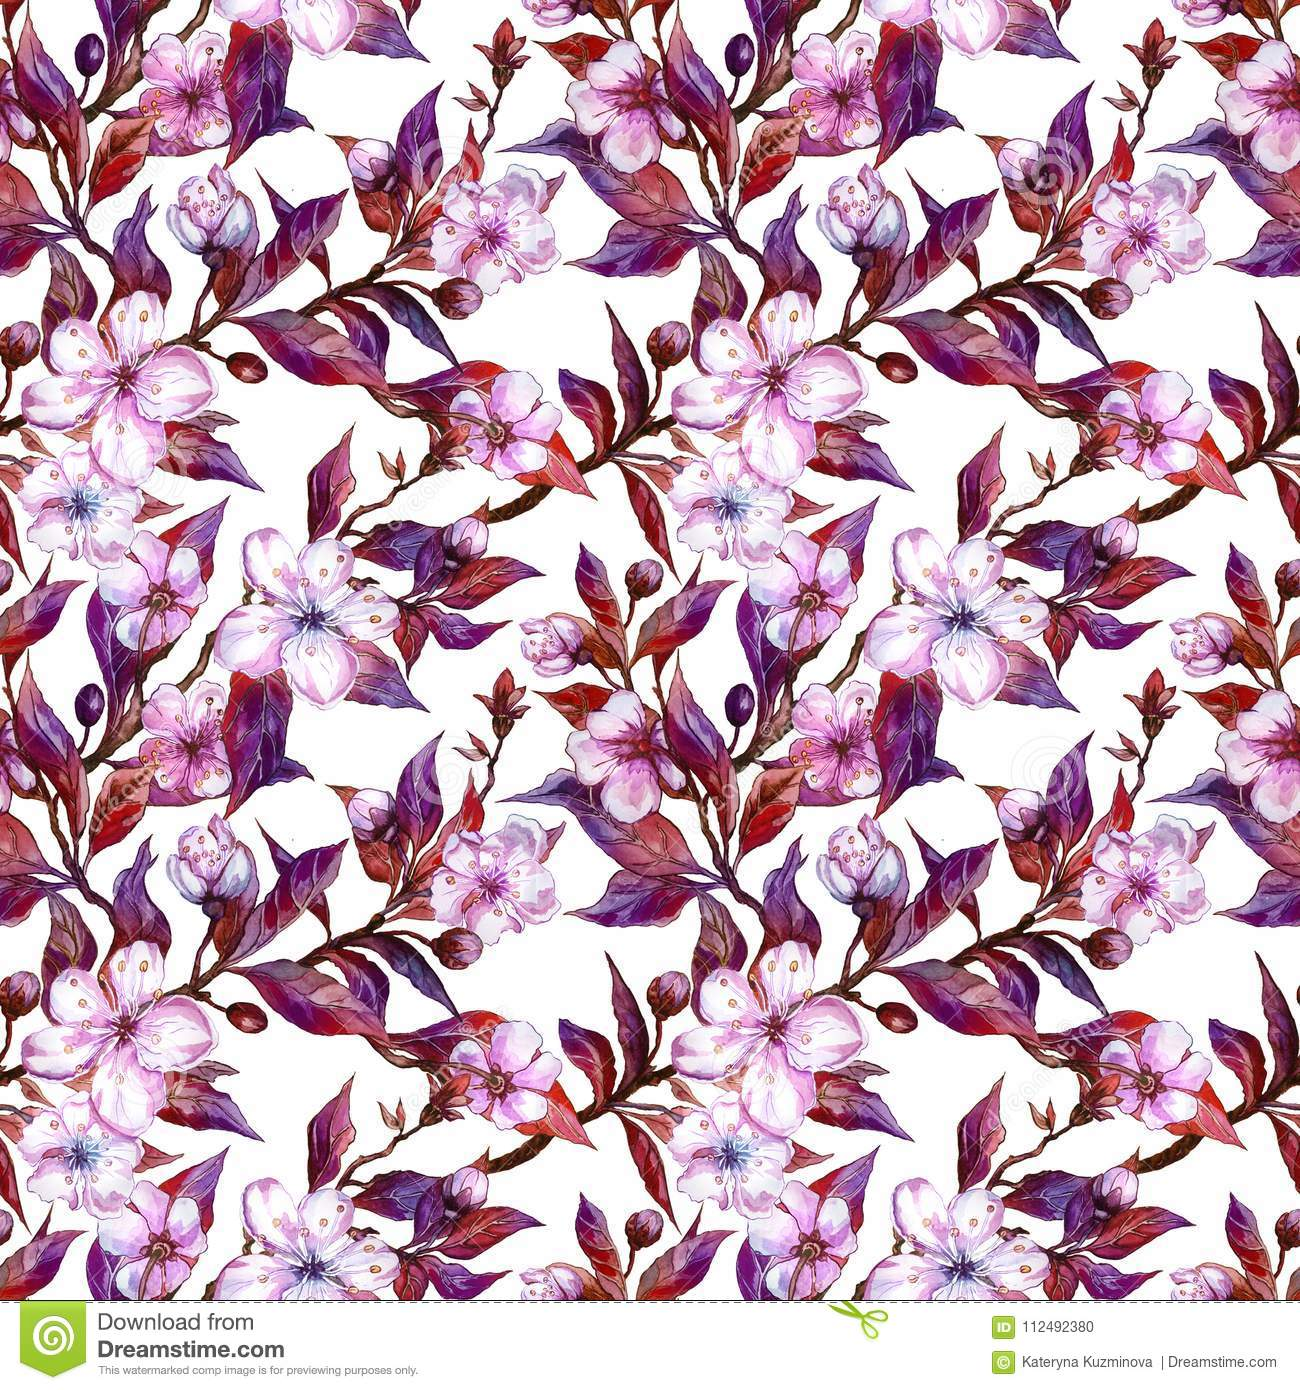 Beautiful plum tree twigs in bloom on white background pink flowers pink flowers and red and purple leaves spring seamless floral pattern watercolor painting hand drawn illustration fabric wallpaper design mightylinksfo